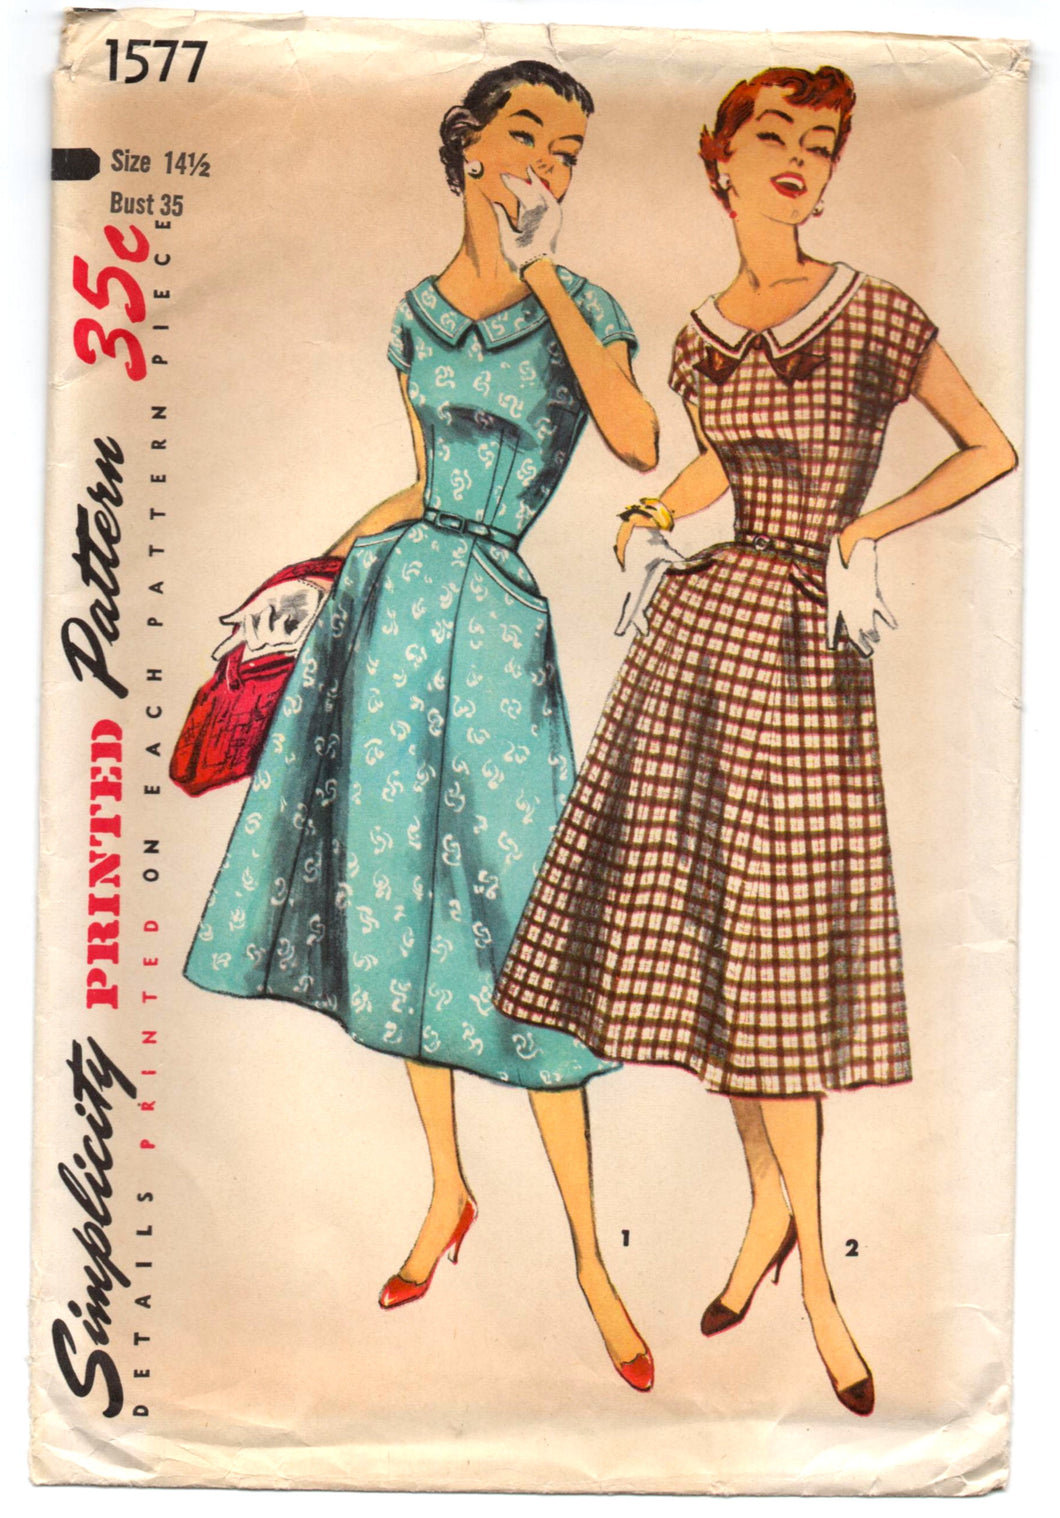 1940's Simplicity One Piece Dress Pattern with pockets and kimono sleeves - Bust 35